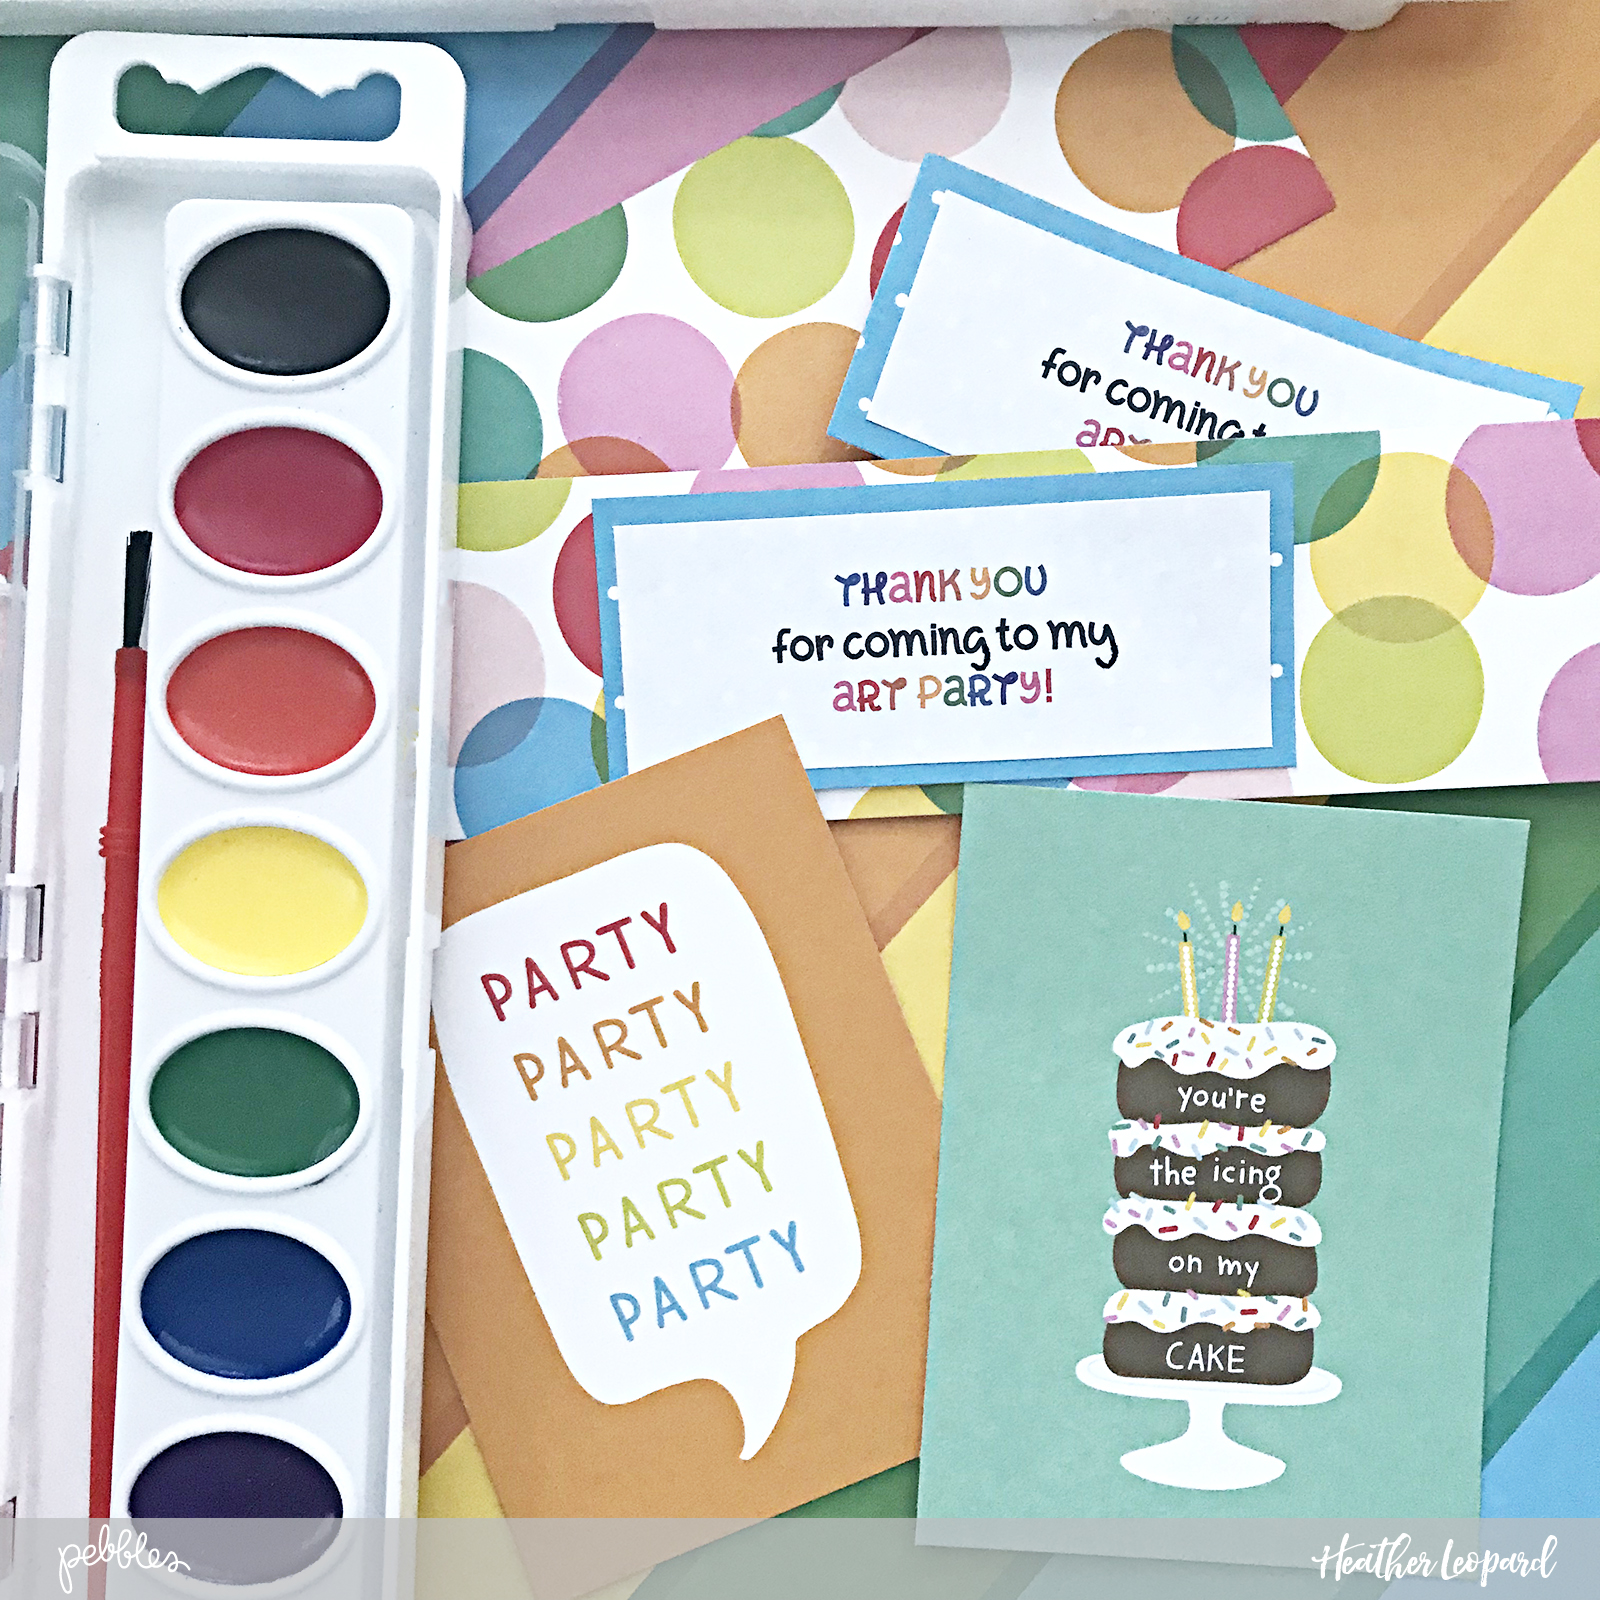 DIY art party birthday invitations and party favors by @HeatherLeopard using @PebblesInc #happyhooray collection #madewithpebbles #birthday #birthdayparty #birthdayinvitations #partyfavors